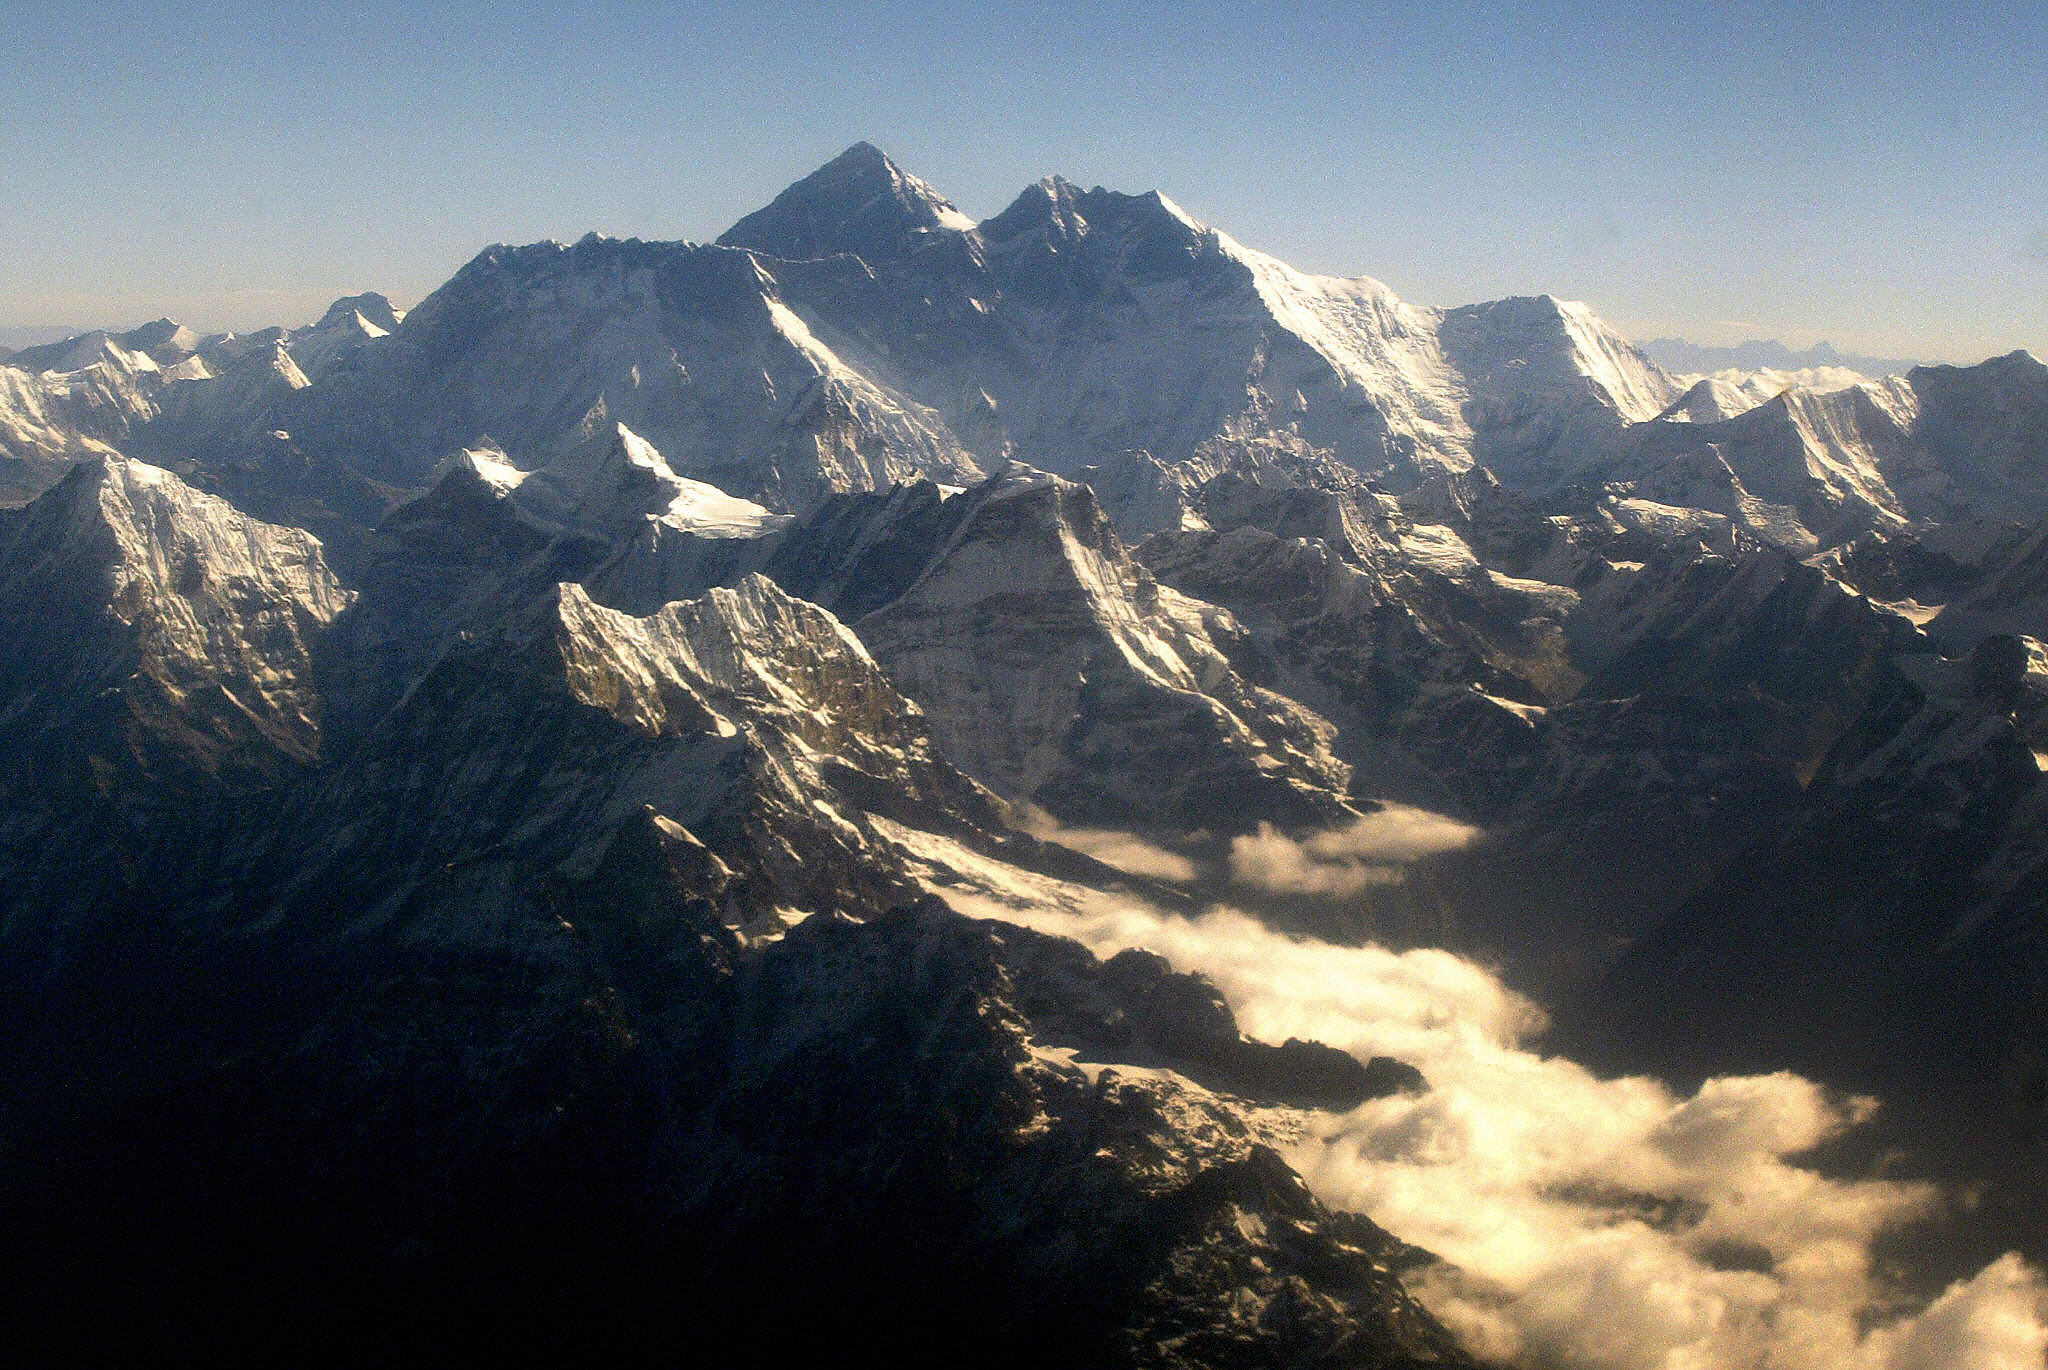 Subhash Paul, Eric Arnold and Maria Strydom all made it to the top of Mount Everest and suffered altitude sickness.